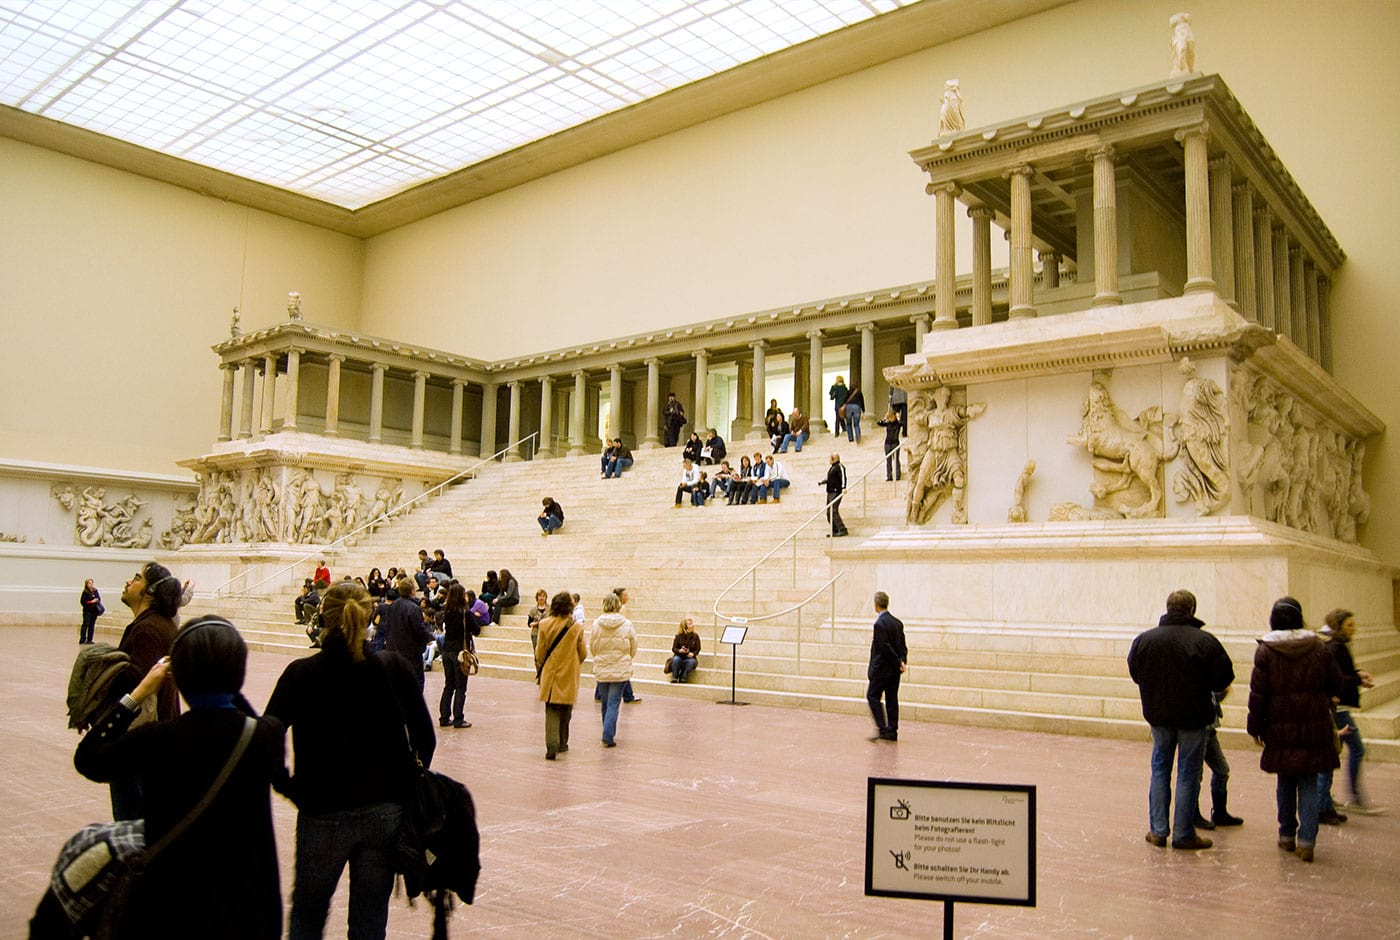 The Pergamon Museum Compare Ticket Prices From Different Websites To Find The Best Deal